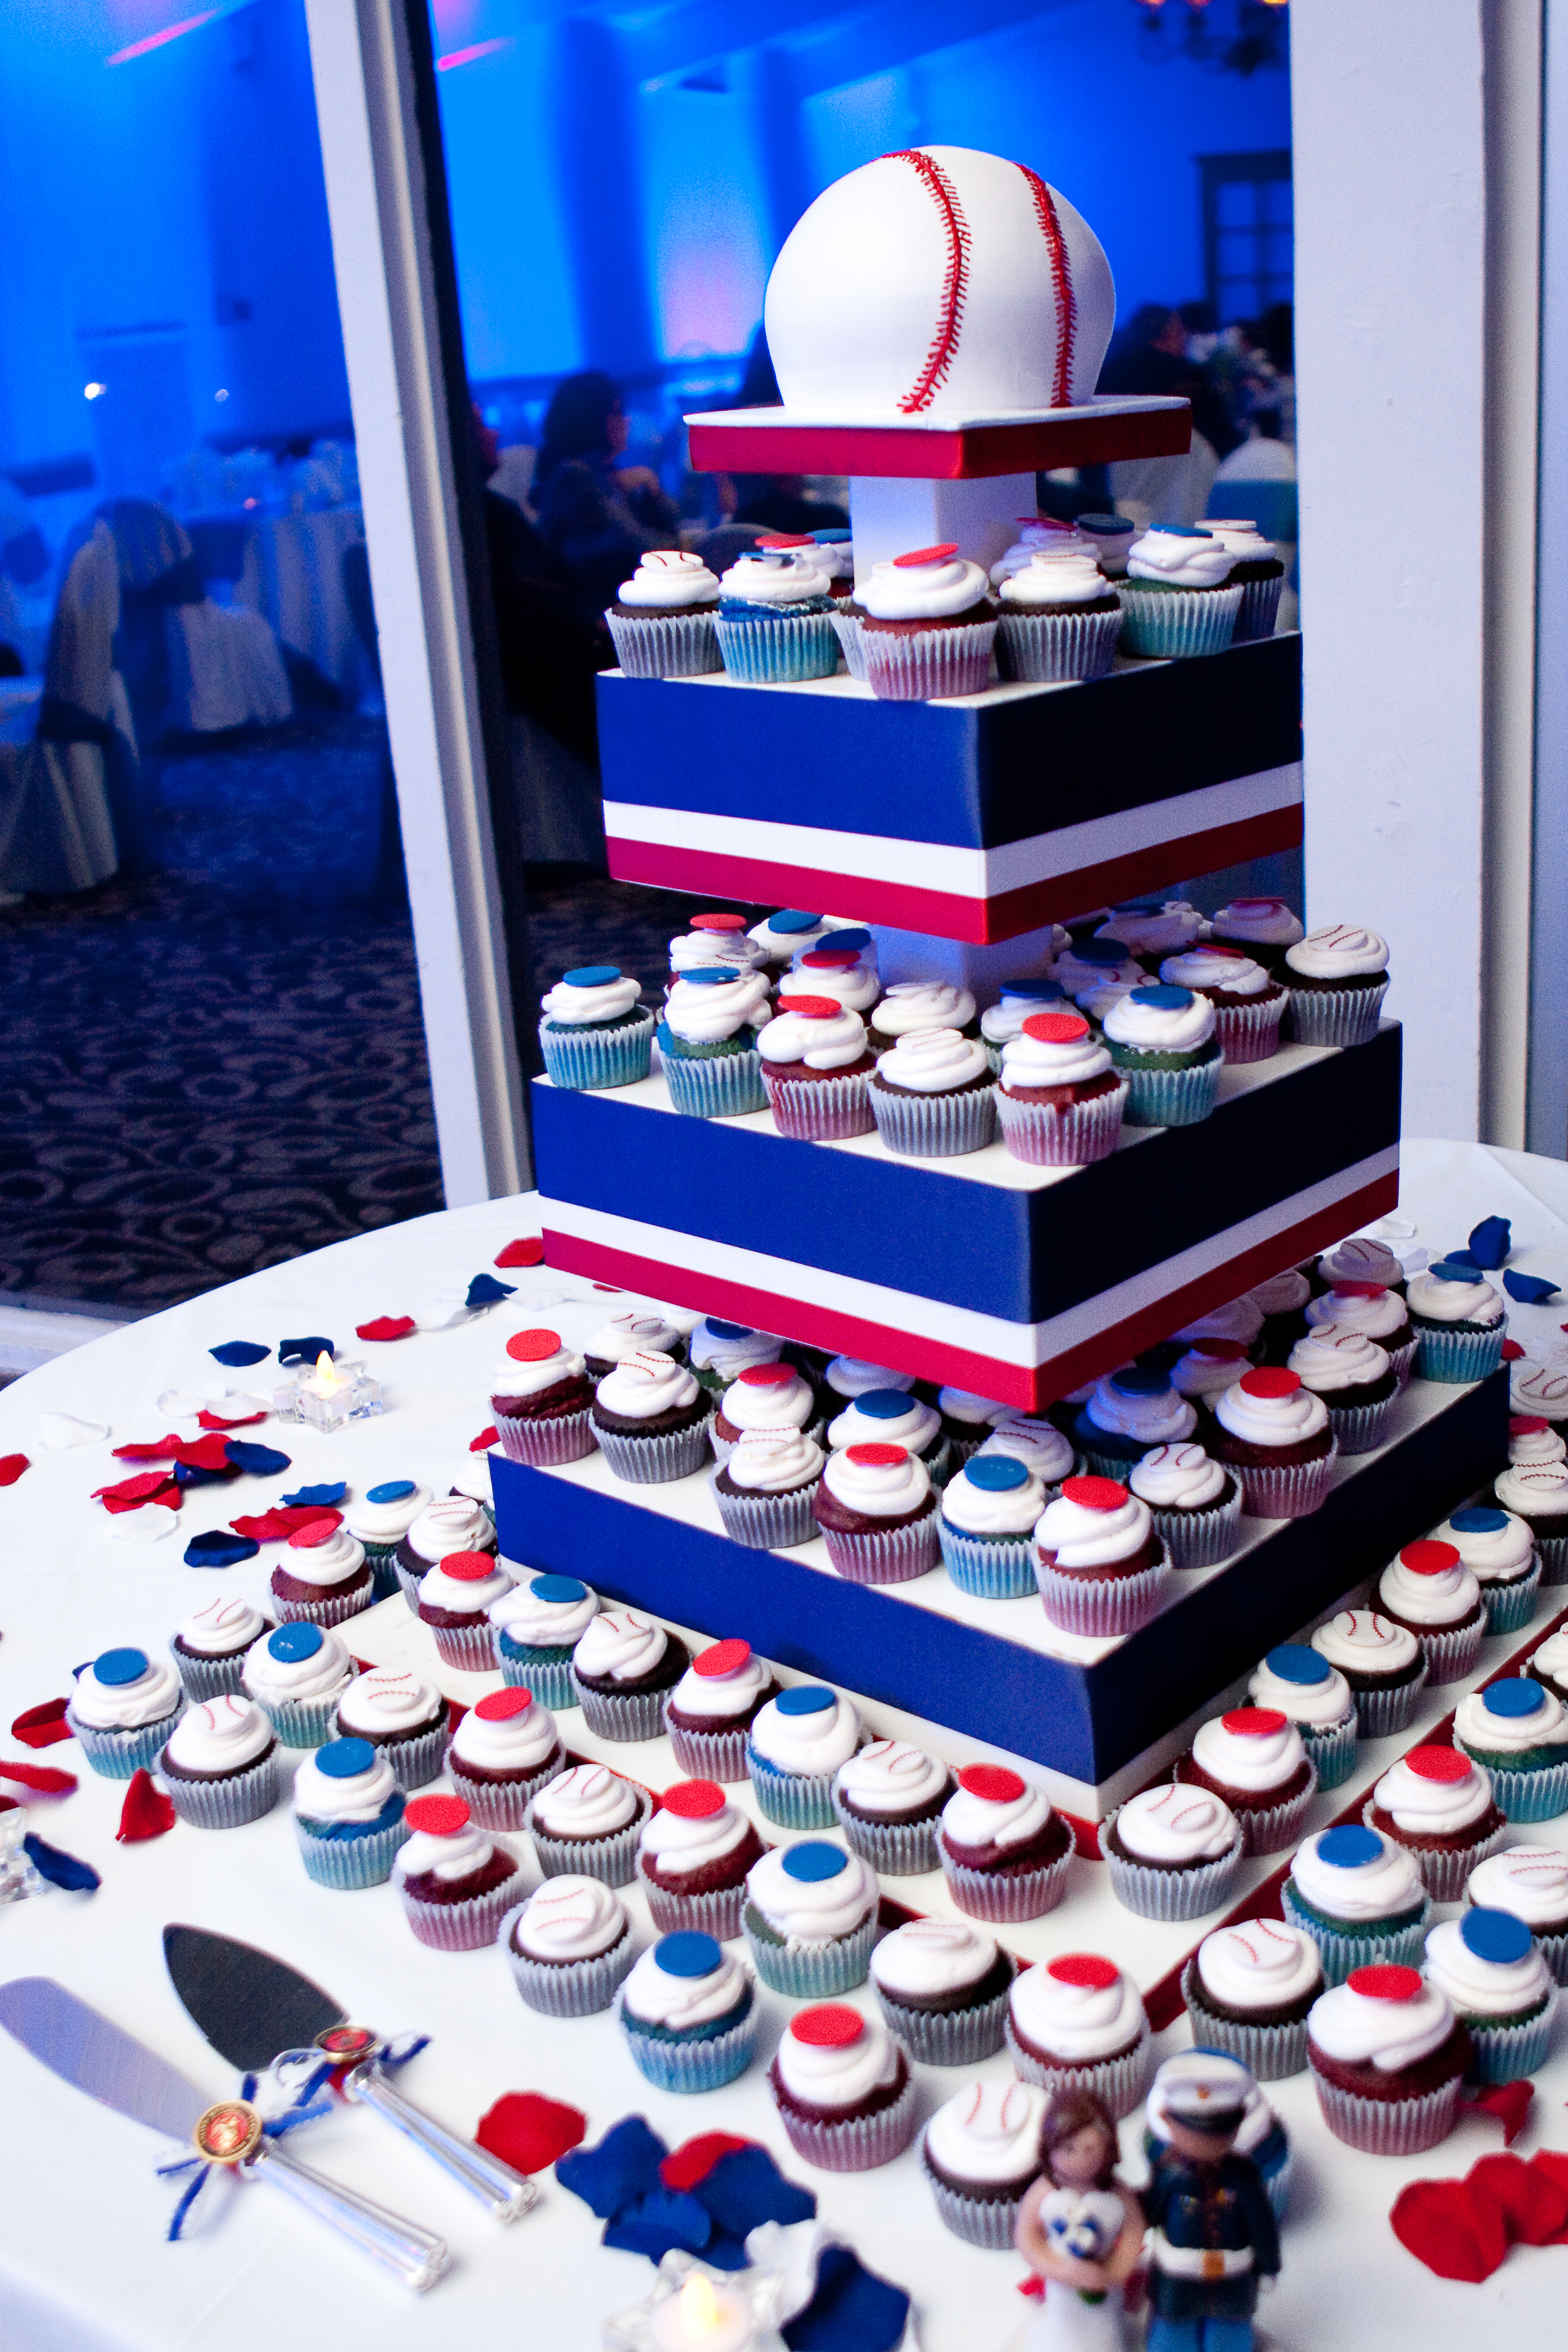 Reception, Flowers & Decor, Photography, Cakes, white, red, blue, cake, Military, Marine, Hollis, Corps, Cari